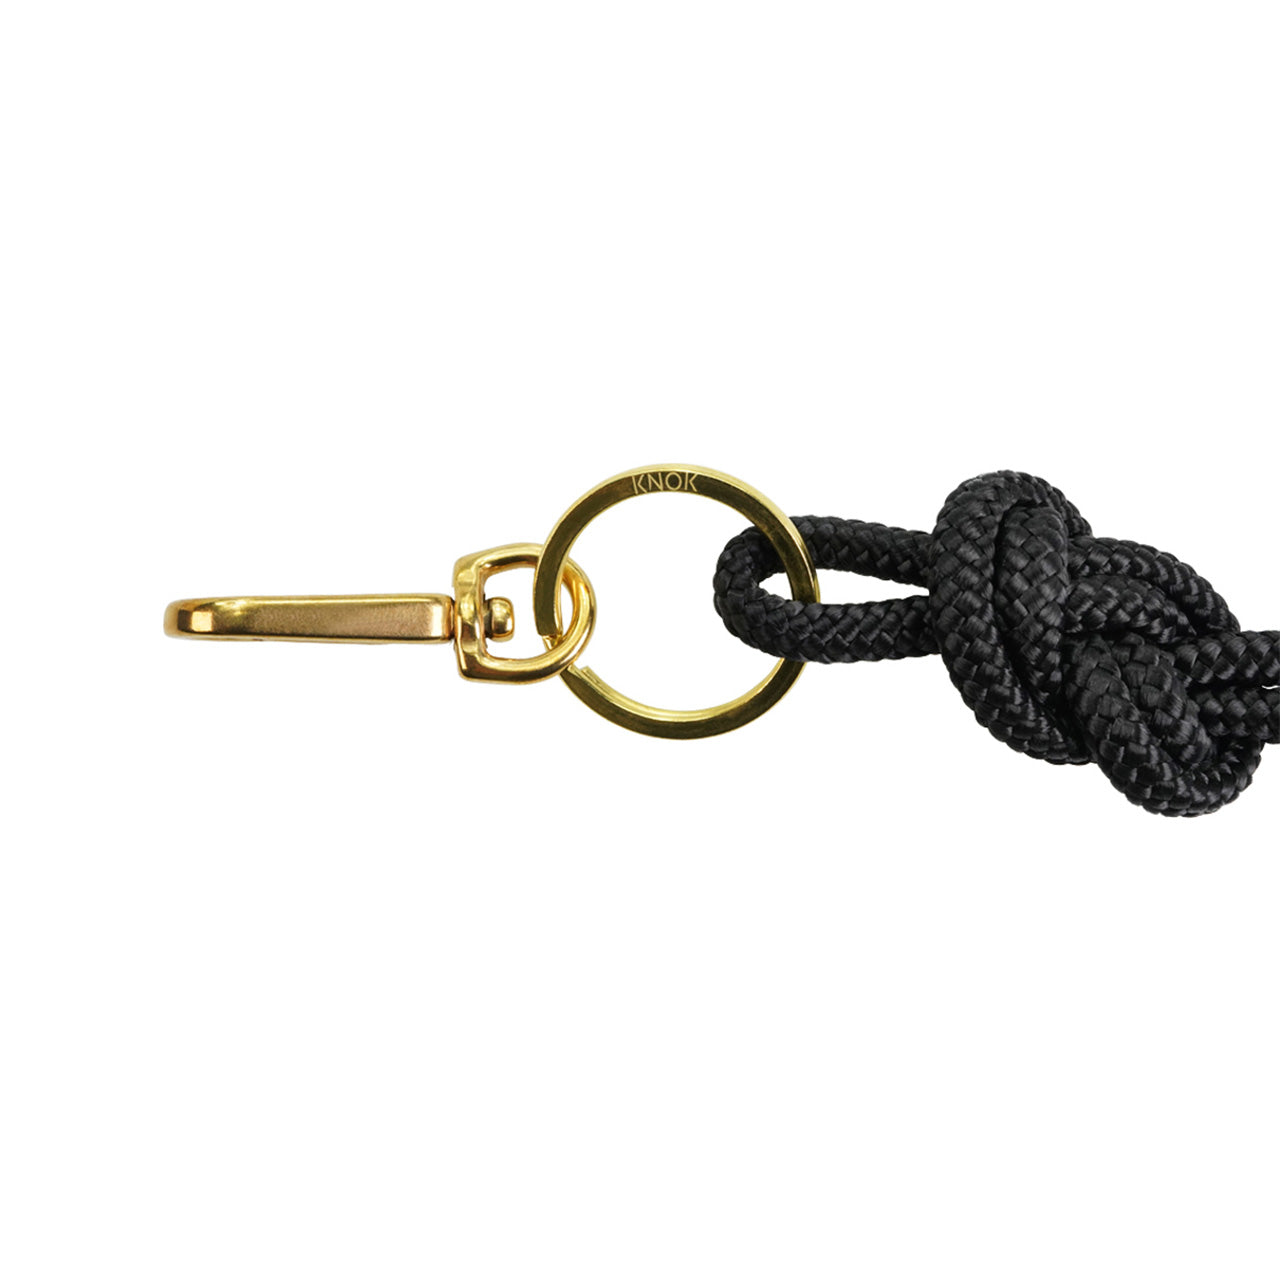 KNOK-KEY-KNOT-BLACK